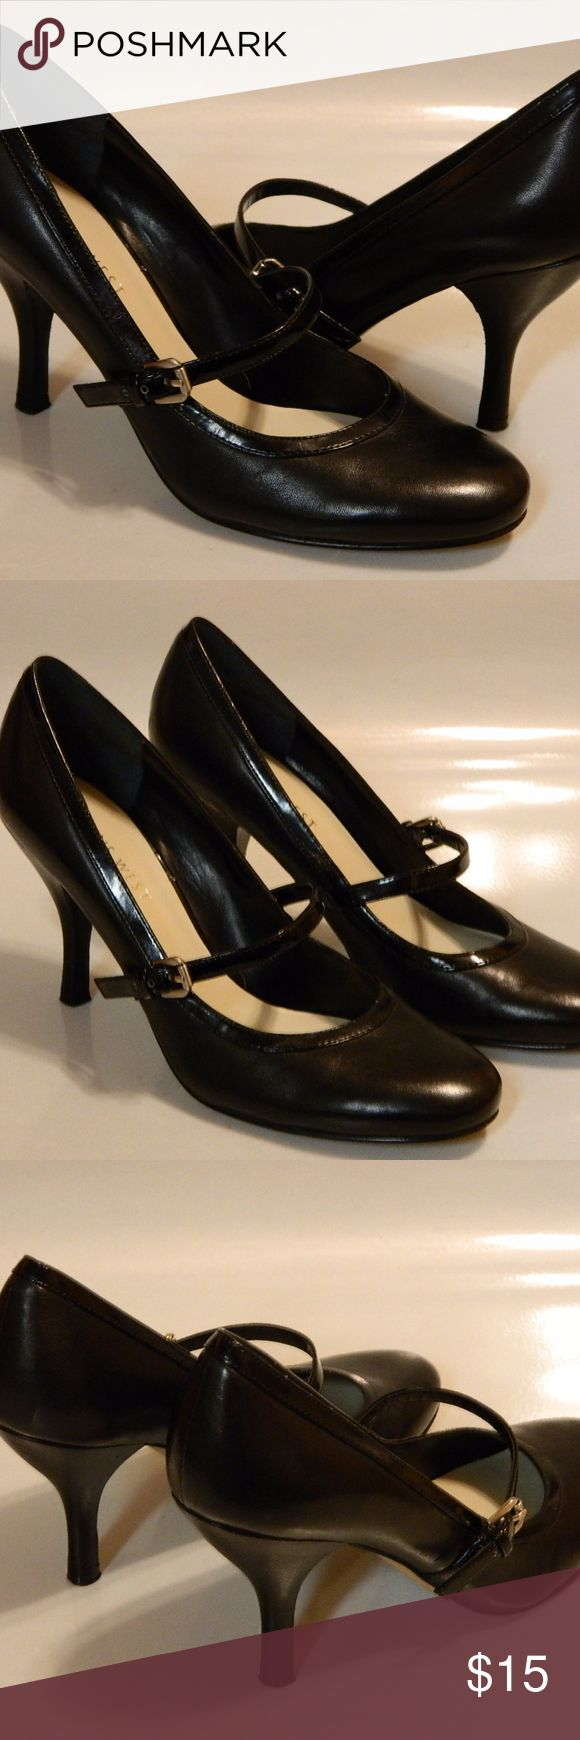 """NINE WEST Womens Shoes PUmps Leather Black Sz 5.5M NINE WEST Maydaya Women's Shoes Pumps Buckle LEATHER Black Sz 5 1/2 Med EUC Rare  ·        Brand: Nine West ·        Style: Maydaya ·        Color: Black ·        Material:  Leather ·        Pattern: Solid ·        Heel Type: Slim 3 1/4"""" ·        Size: 5 1/2 ·        Width: Medium ·        Country/Region of Manufacturer: --- ·        Condition: Excellent Used Condition (Some wear to bottom soles only.) Nine West Shoes Heels"""